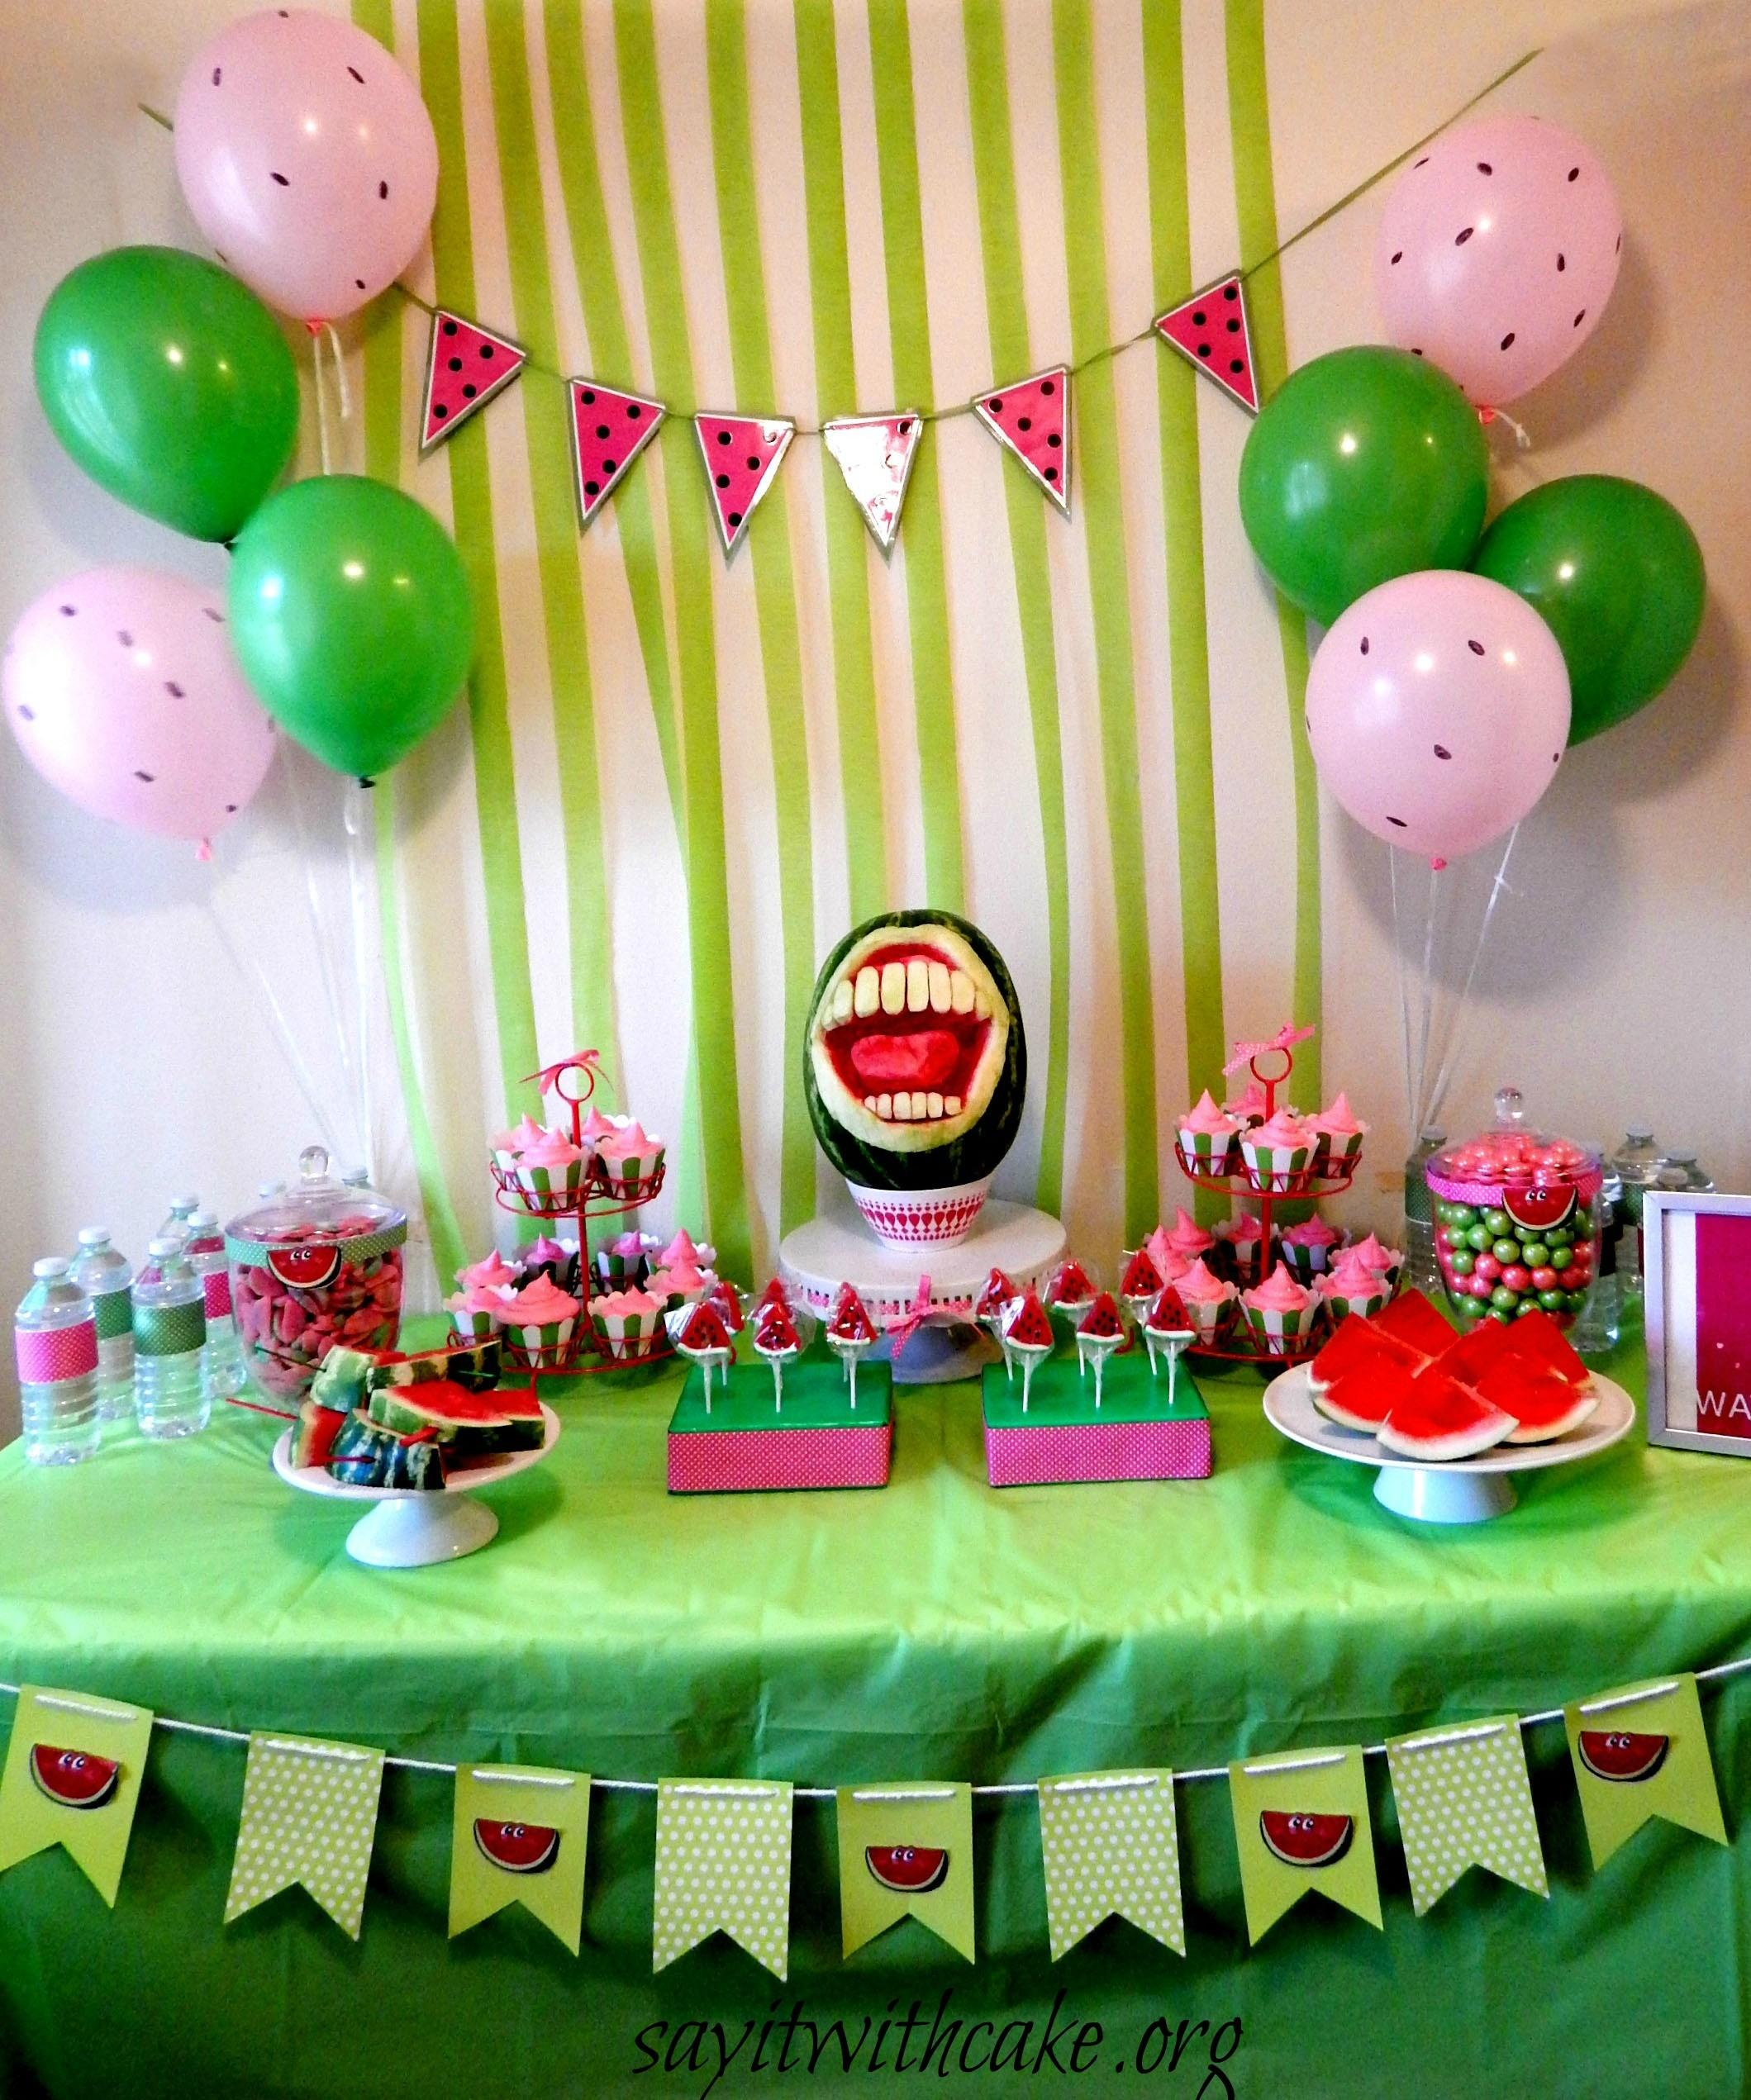 End Summer Watermelon Party Say Cake